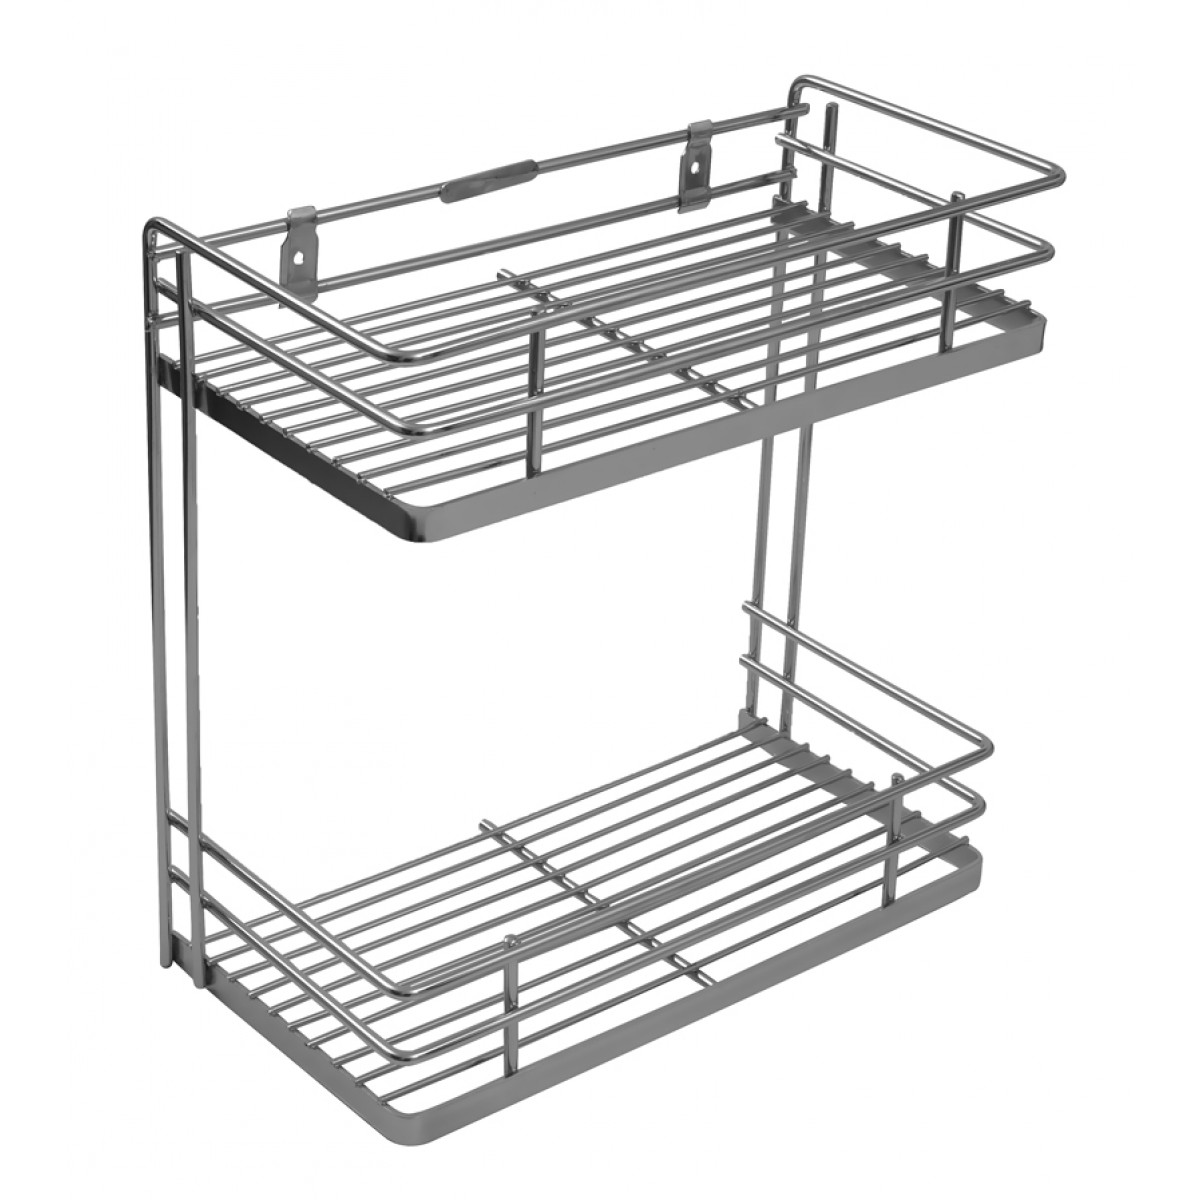 Kitchen Wall Accessories Stainless Steel: Klaxon Wall Mounted Stainless Steel Double Shelf Kitchen